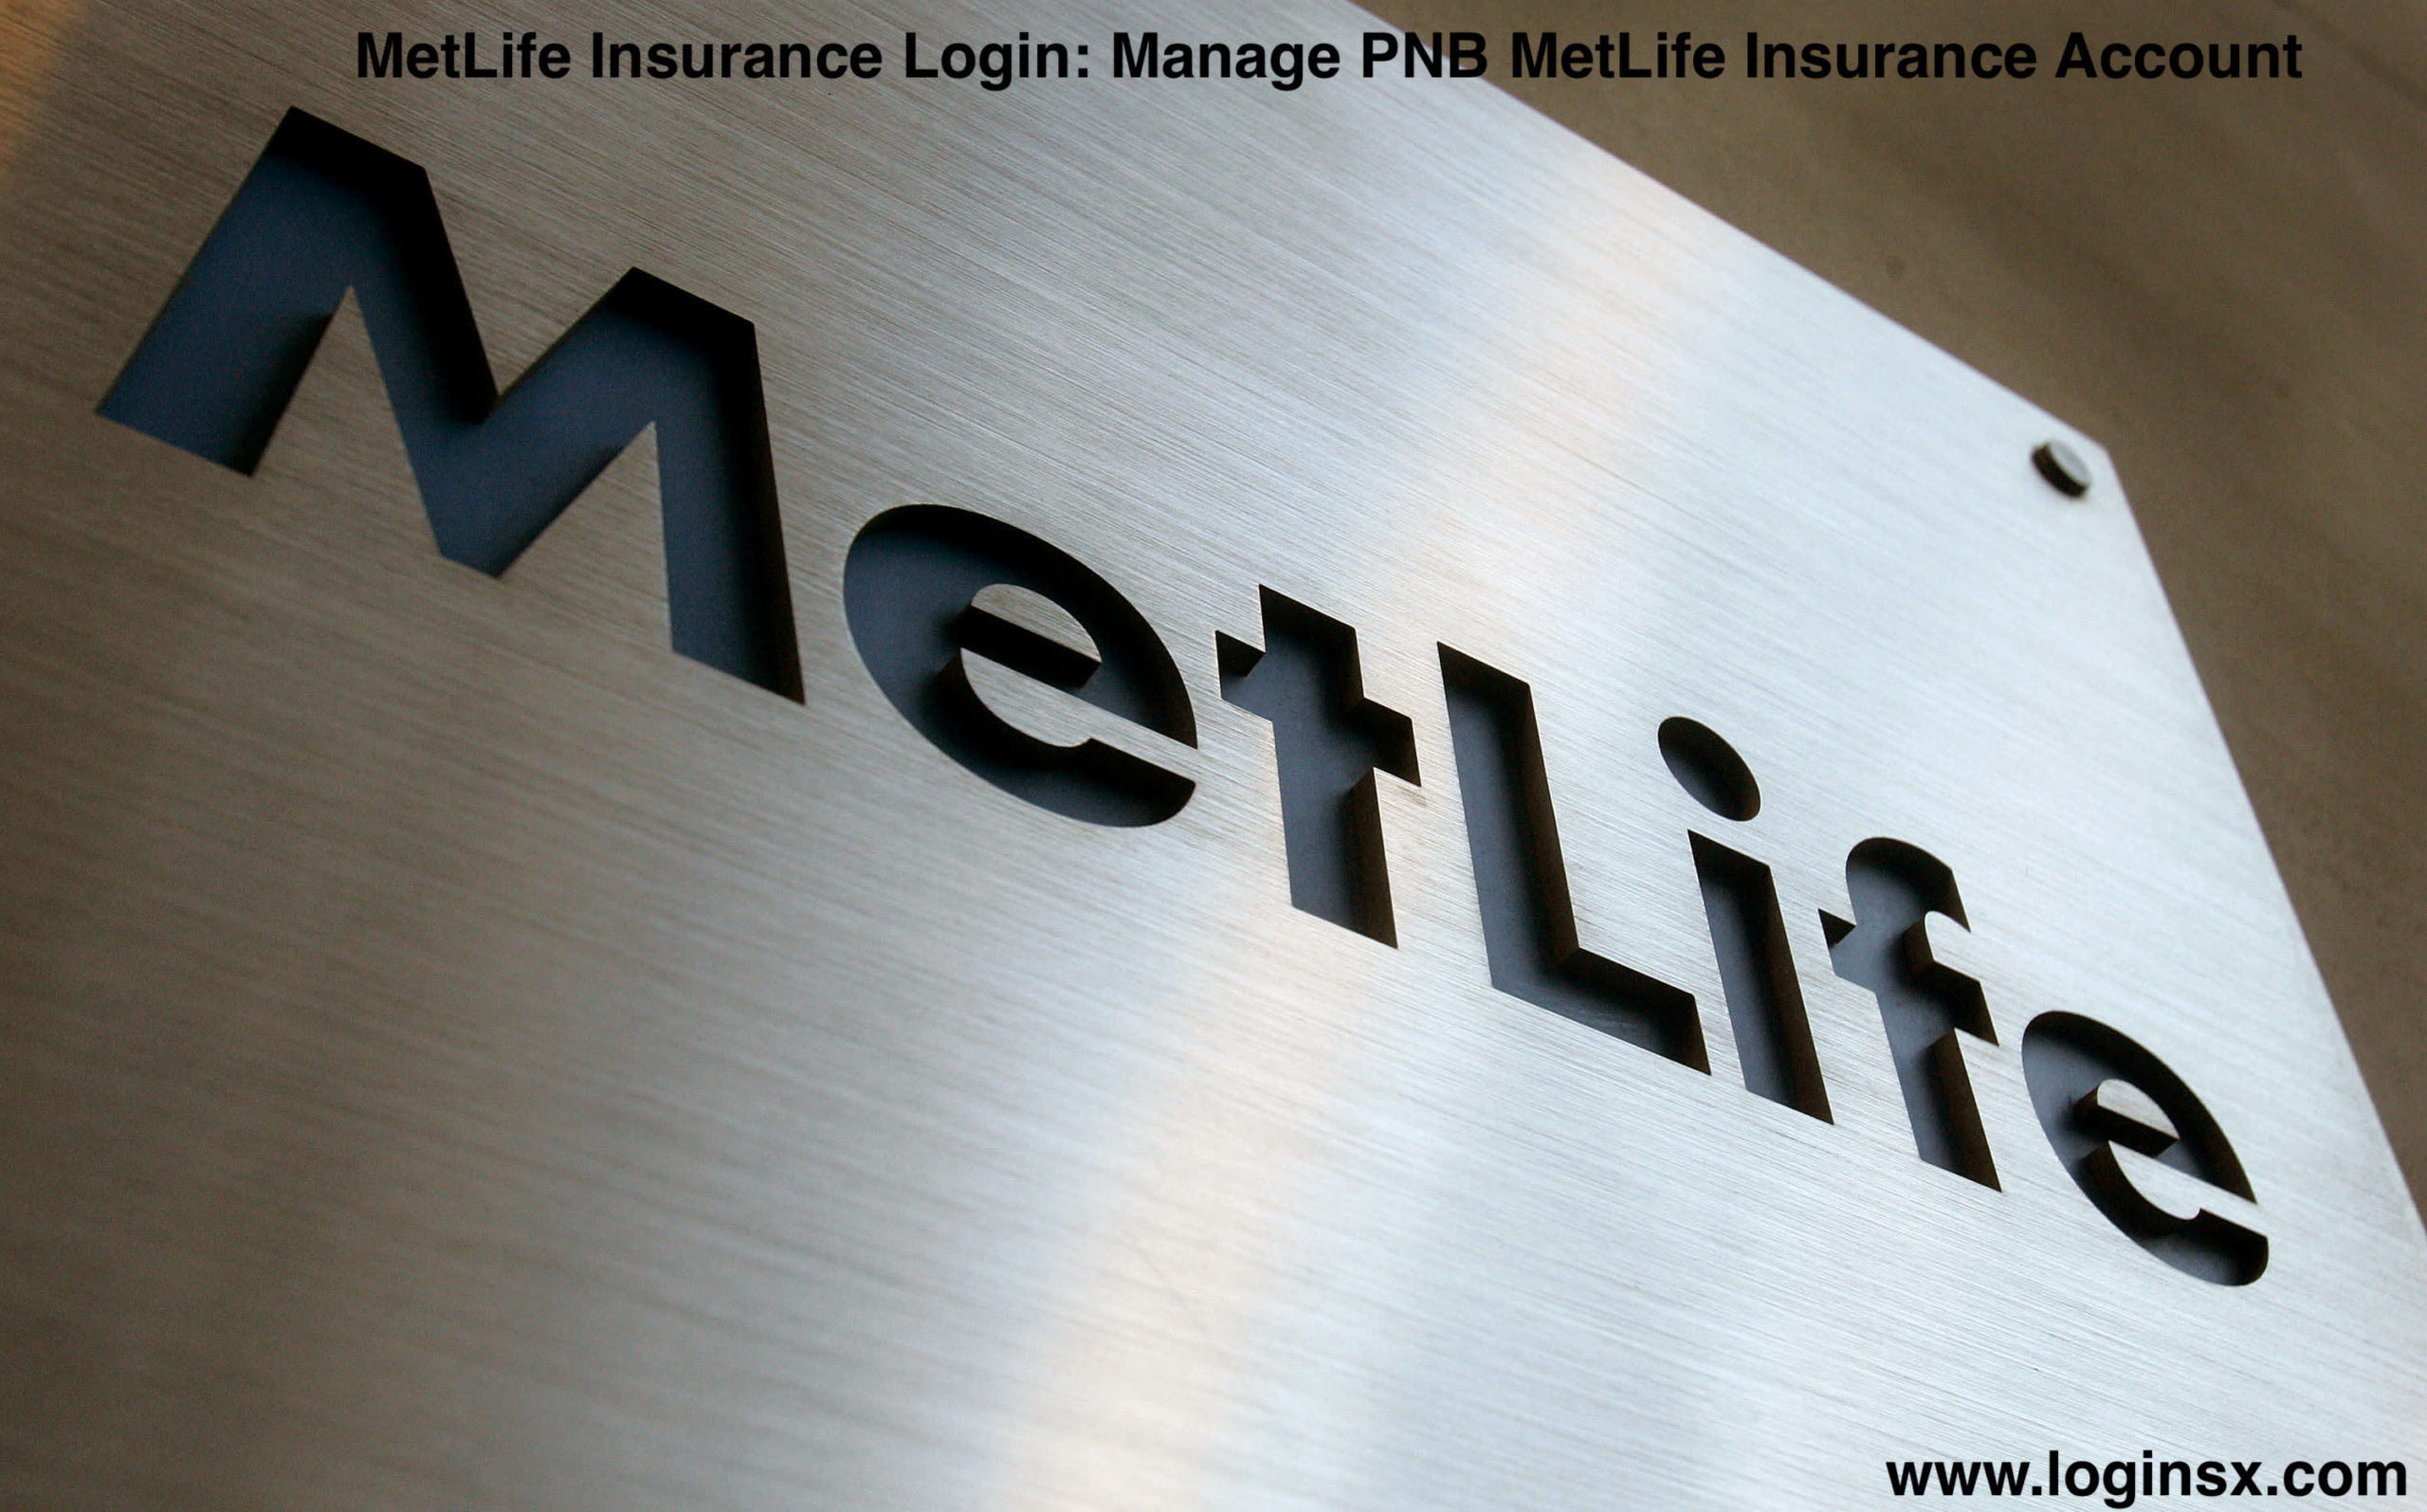 MetLife Insurance Login: Manage PNB MetLife Insurance Account At www.metlife.com